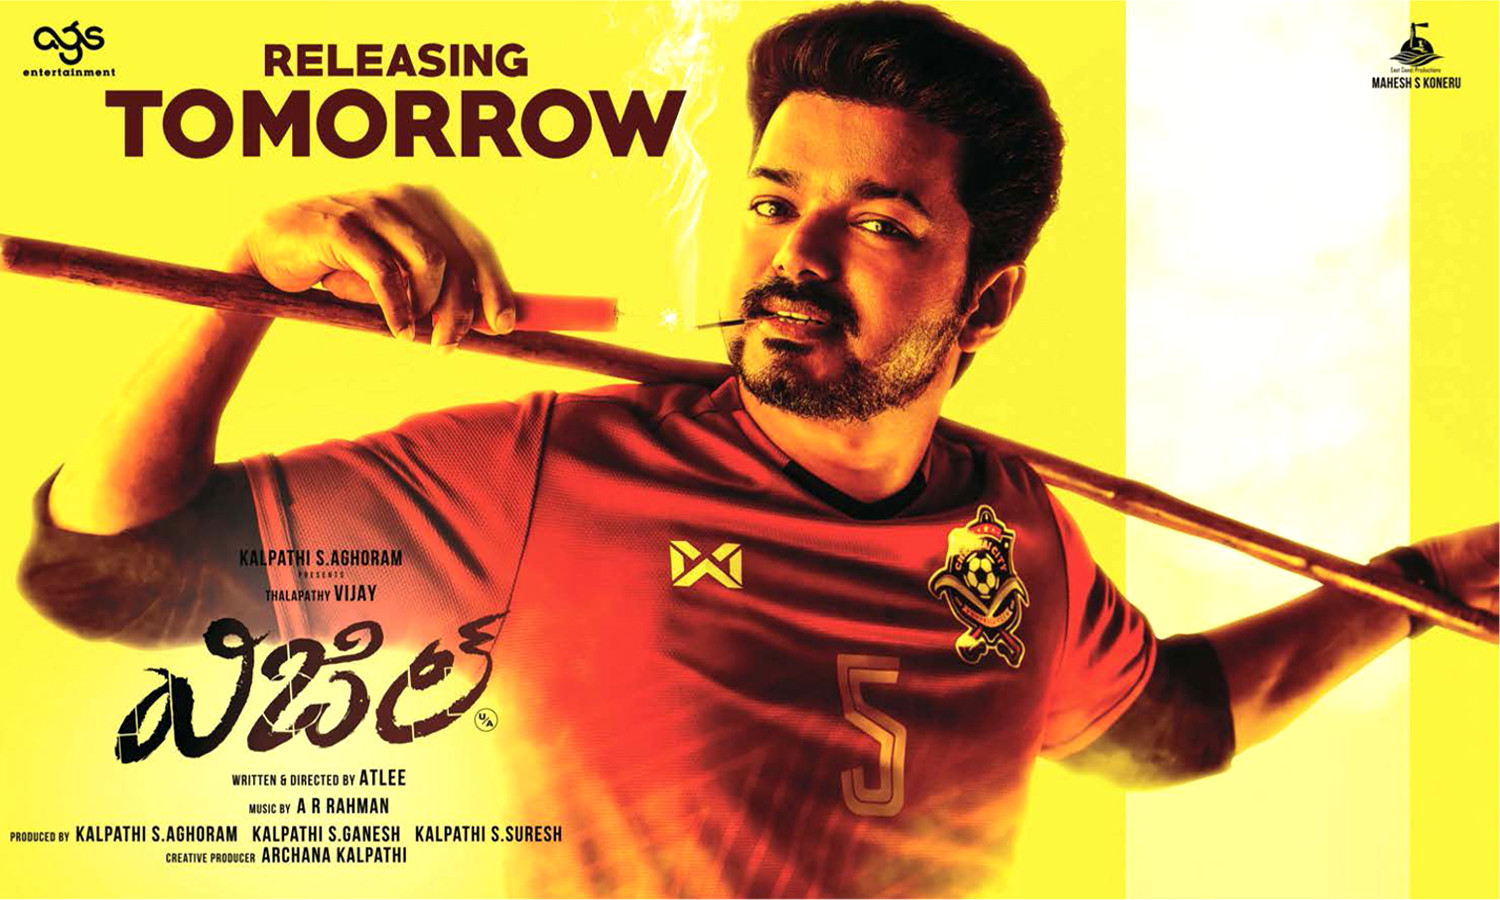 Vijay Whistle Movie Releasing Tomorrow Posters HD